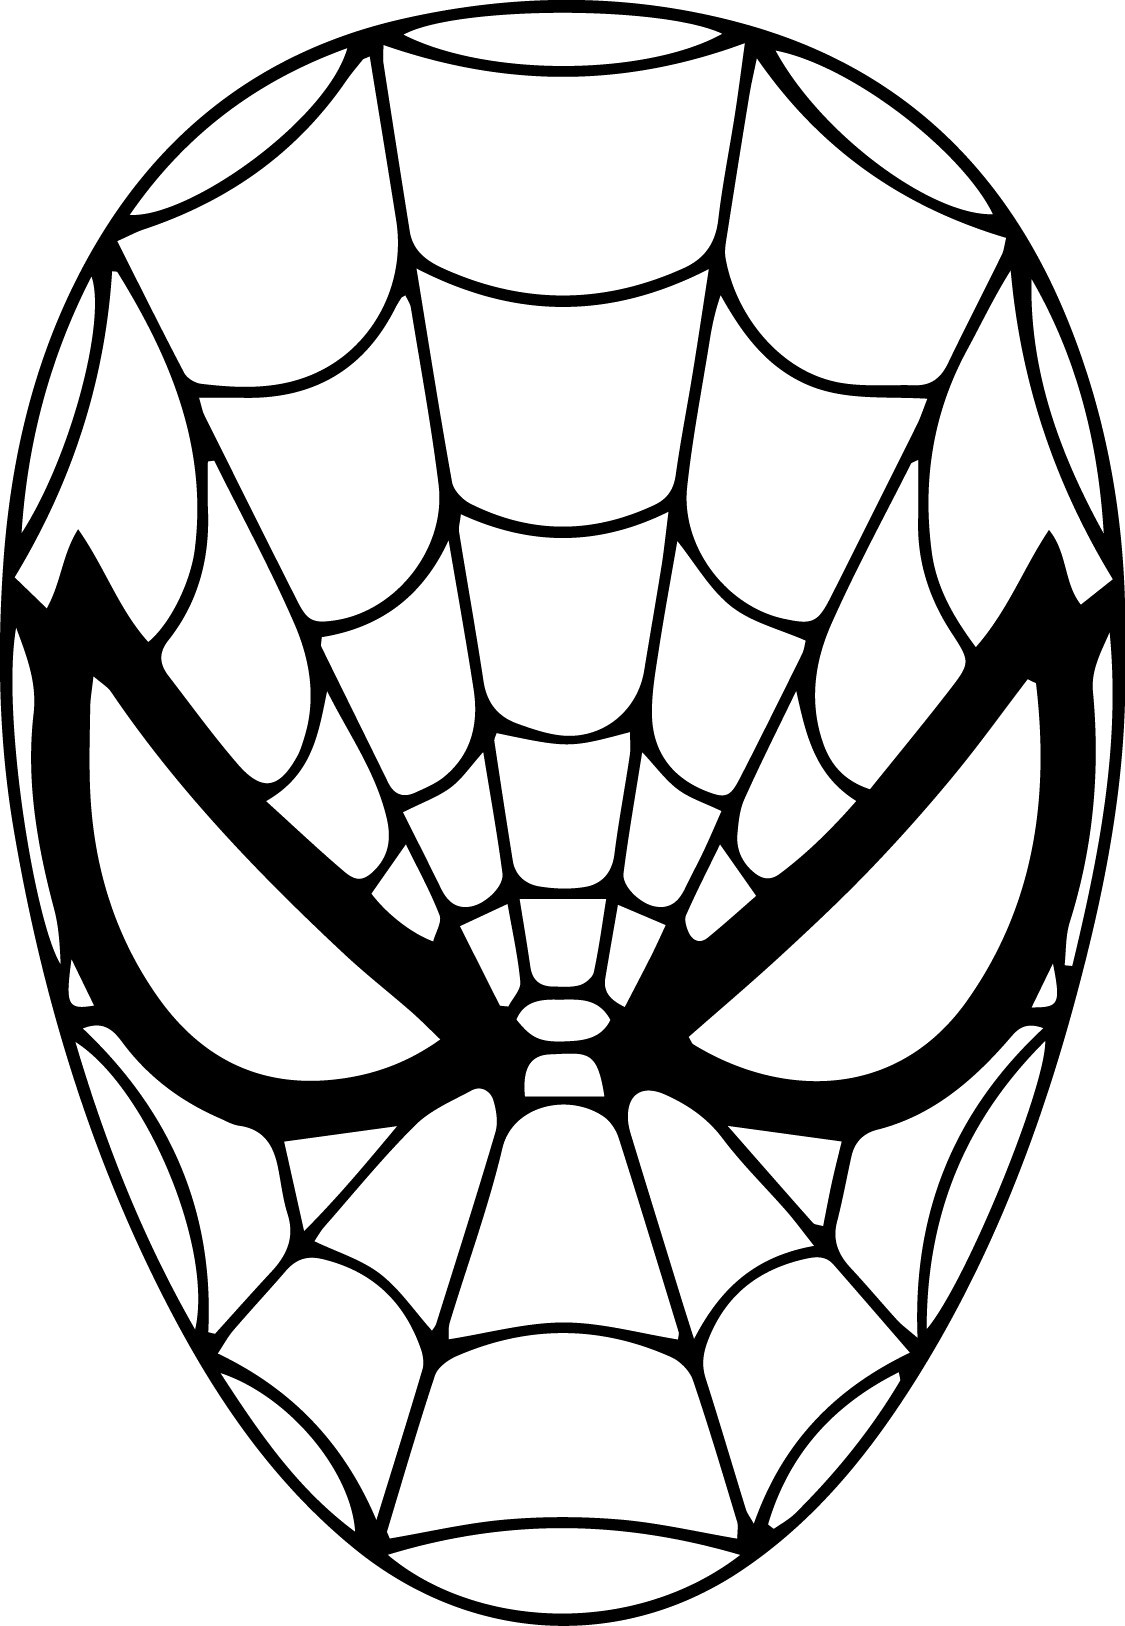 face mask coloring pages mask coloring pages coloring pages to download and print coloring mask face pages